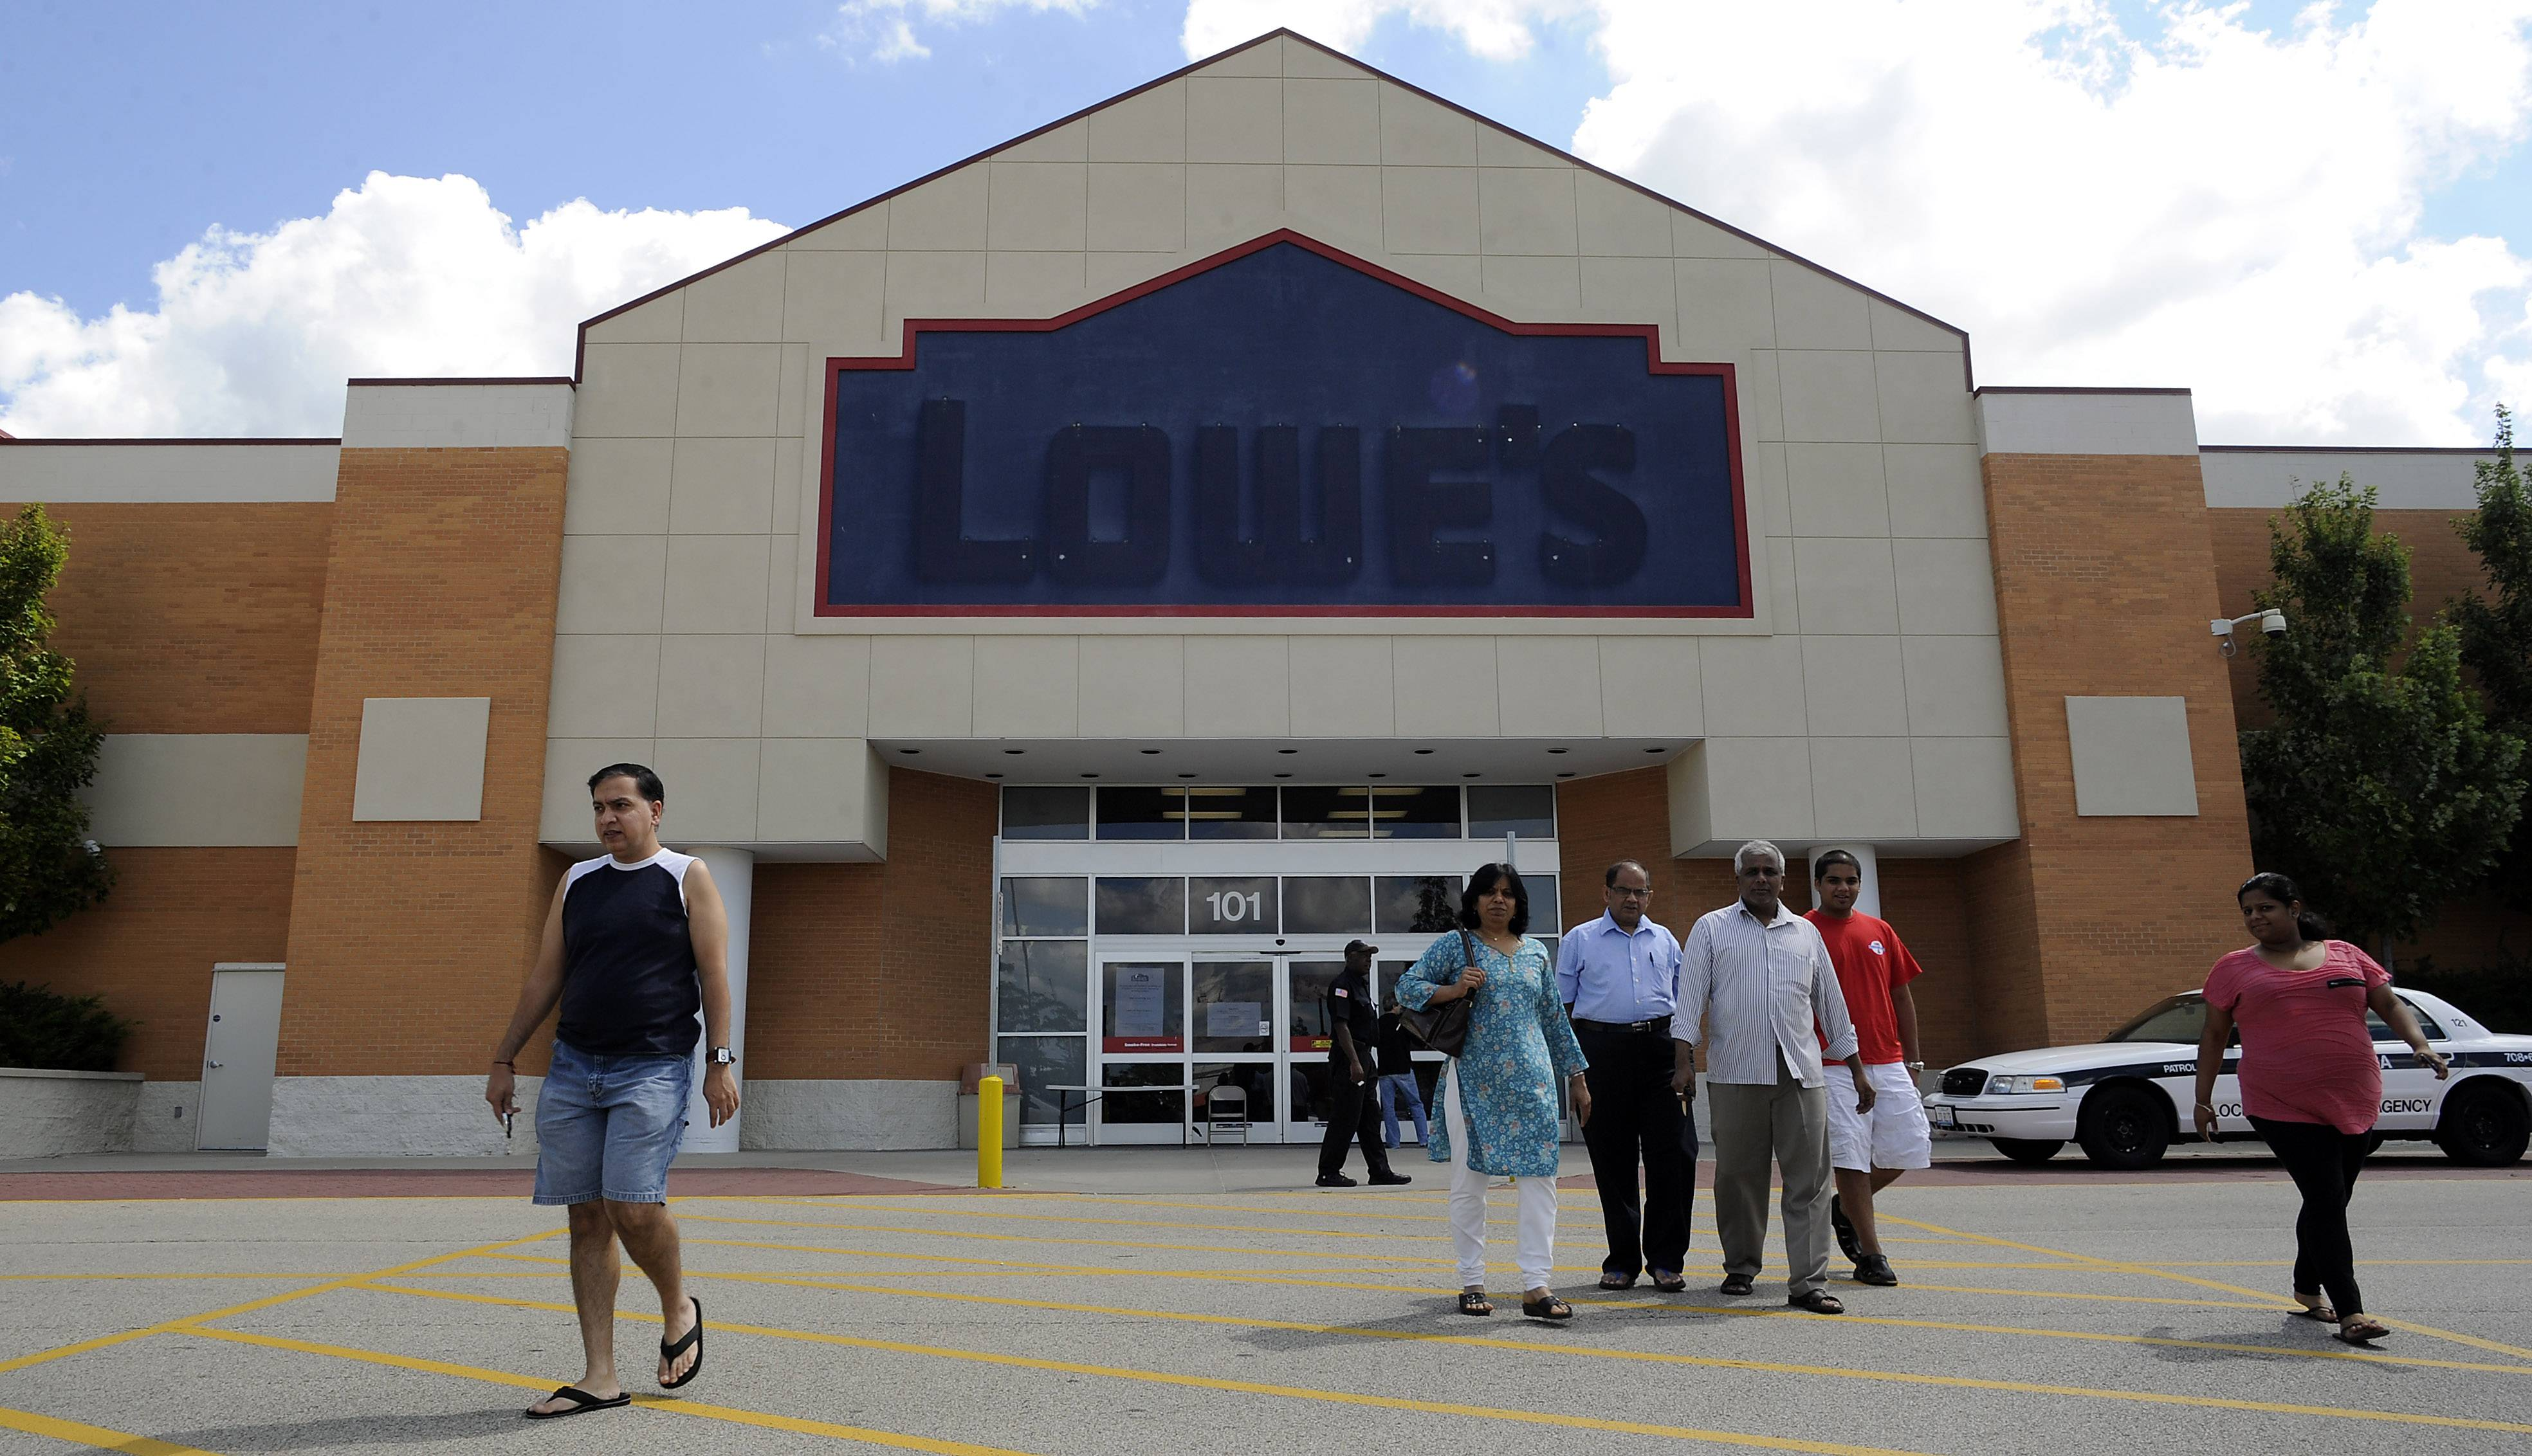 Lowes closes stores in Elgin and Schaumburg